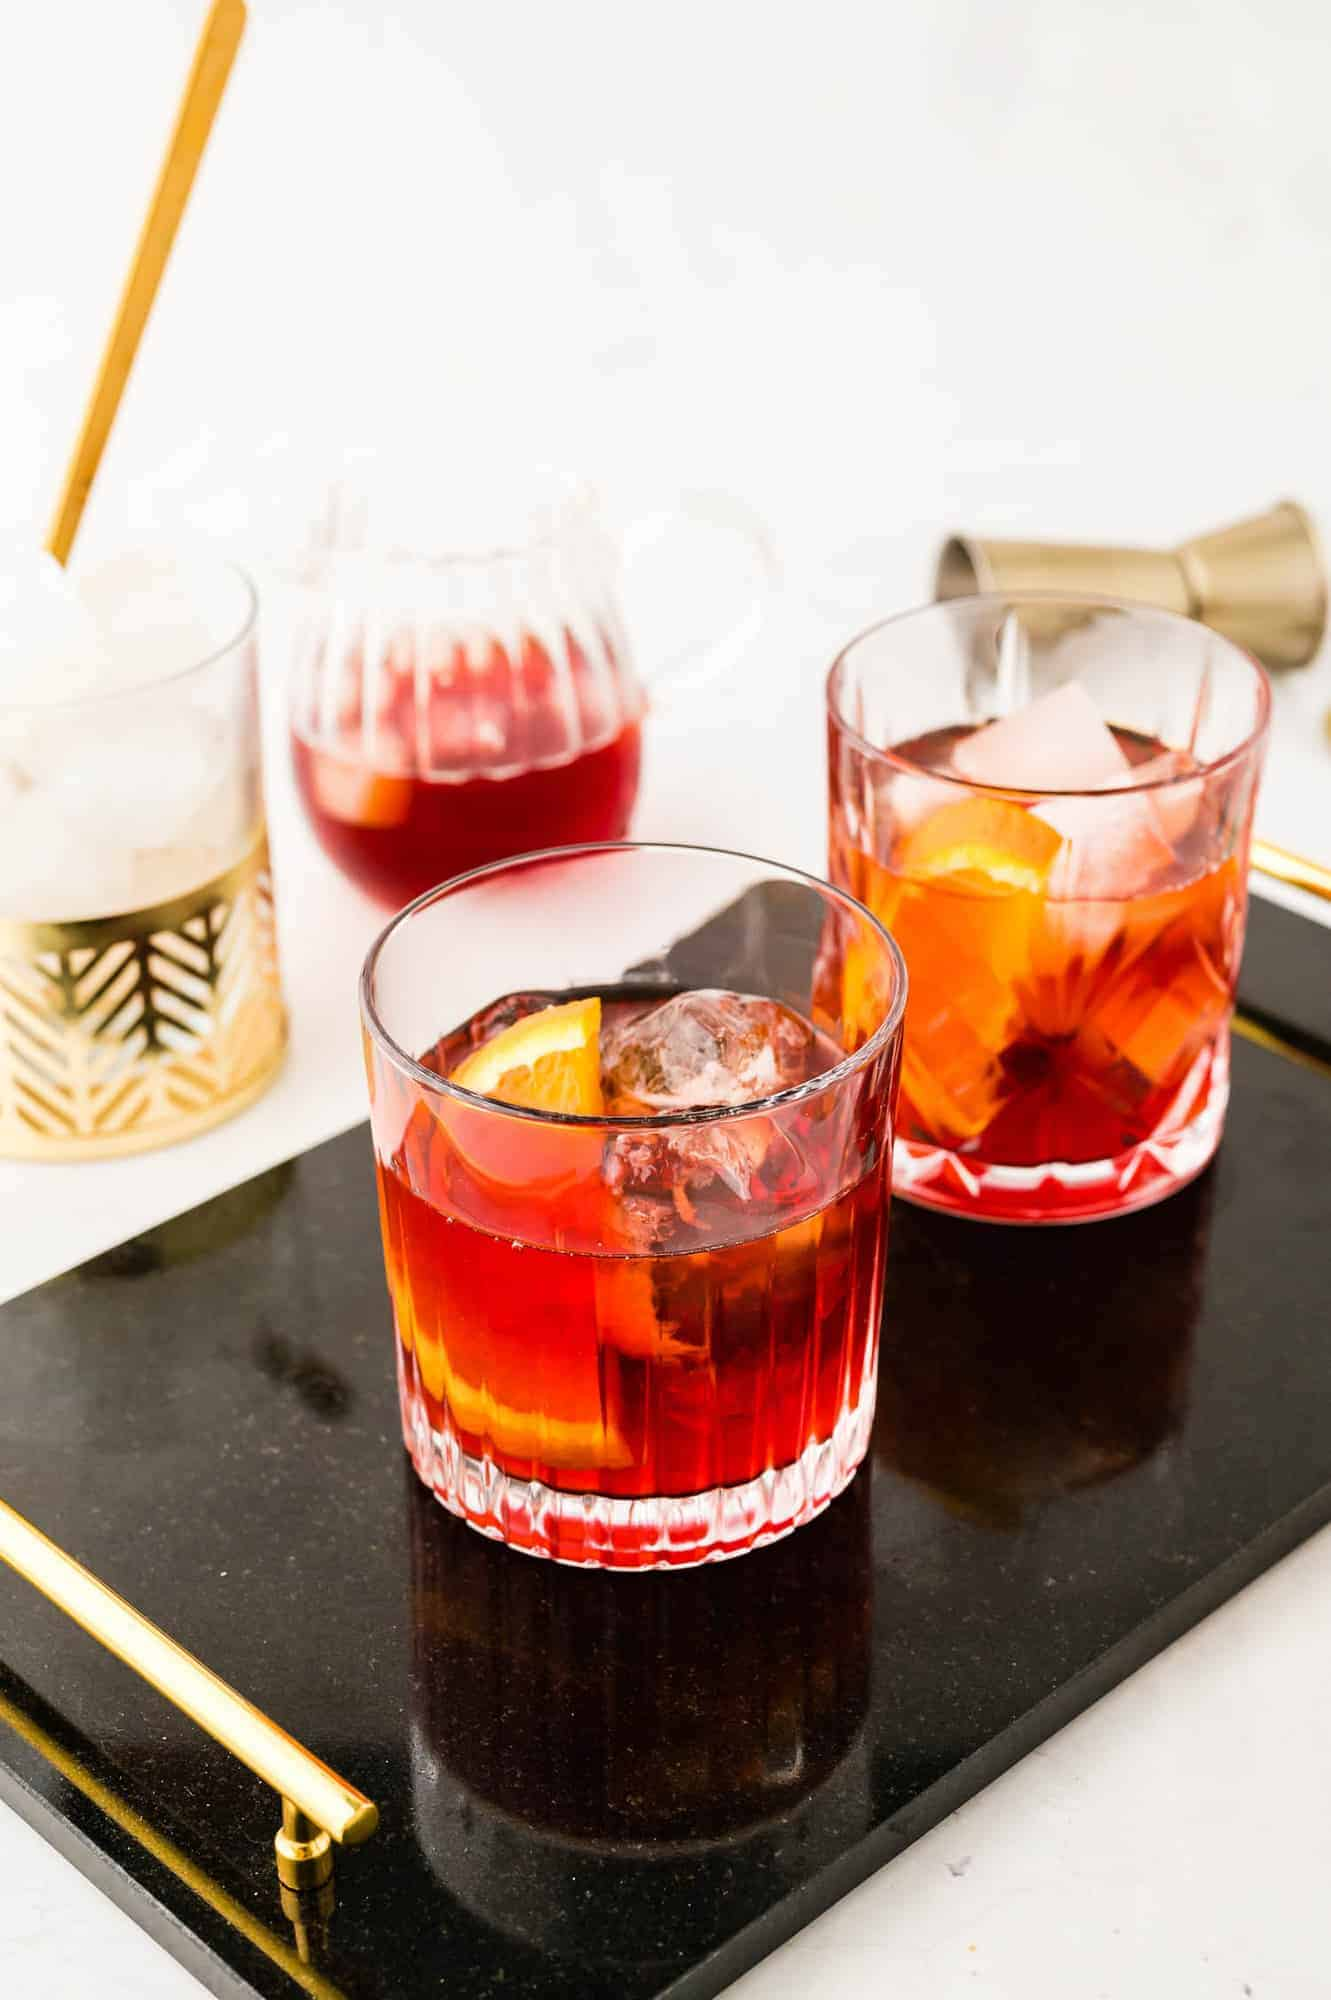 Two cocktails on a black tray.